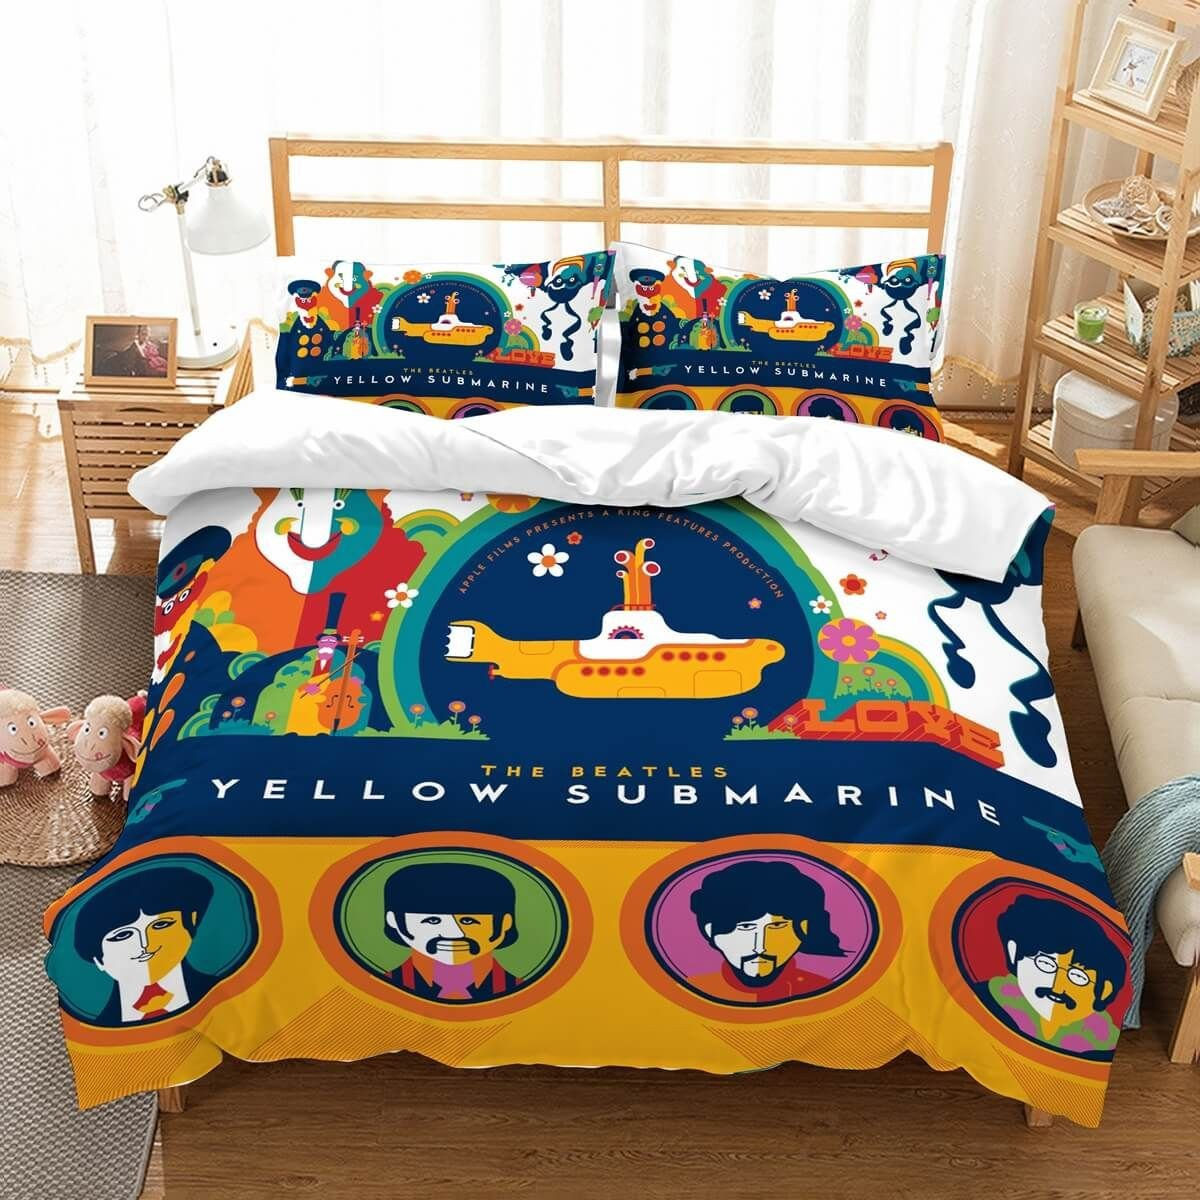 Paw Patrol Bedroom Set Awesome 3d Customize the Beatles Bedding Set Duvet Cover Set Bedroom